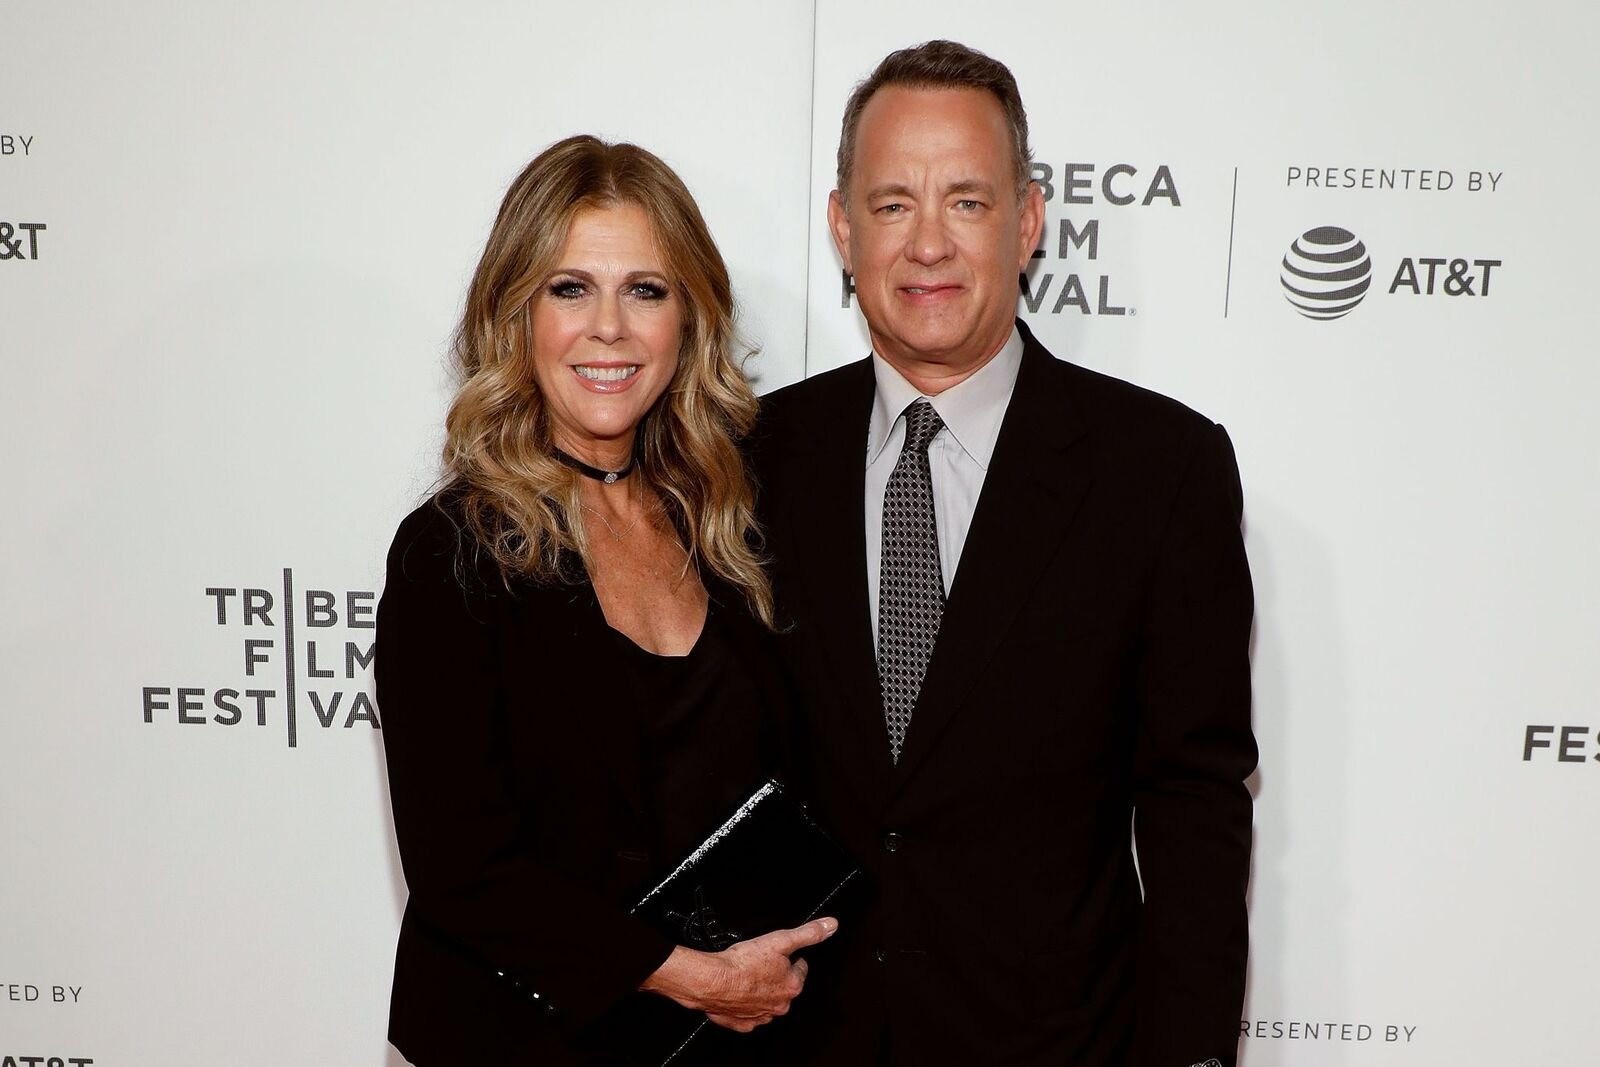 """Rita Wilson and Tom Hanks attend the premiere of """"The Circle"""" during the 2017 Tribeca Film Festival at Borough of Manhattan Community College on April 26, 2017. 